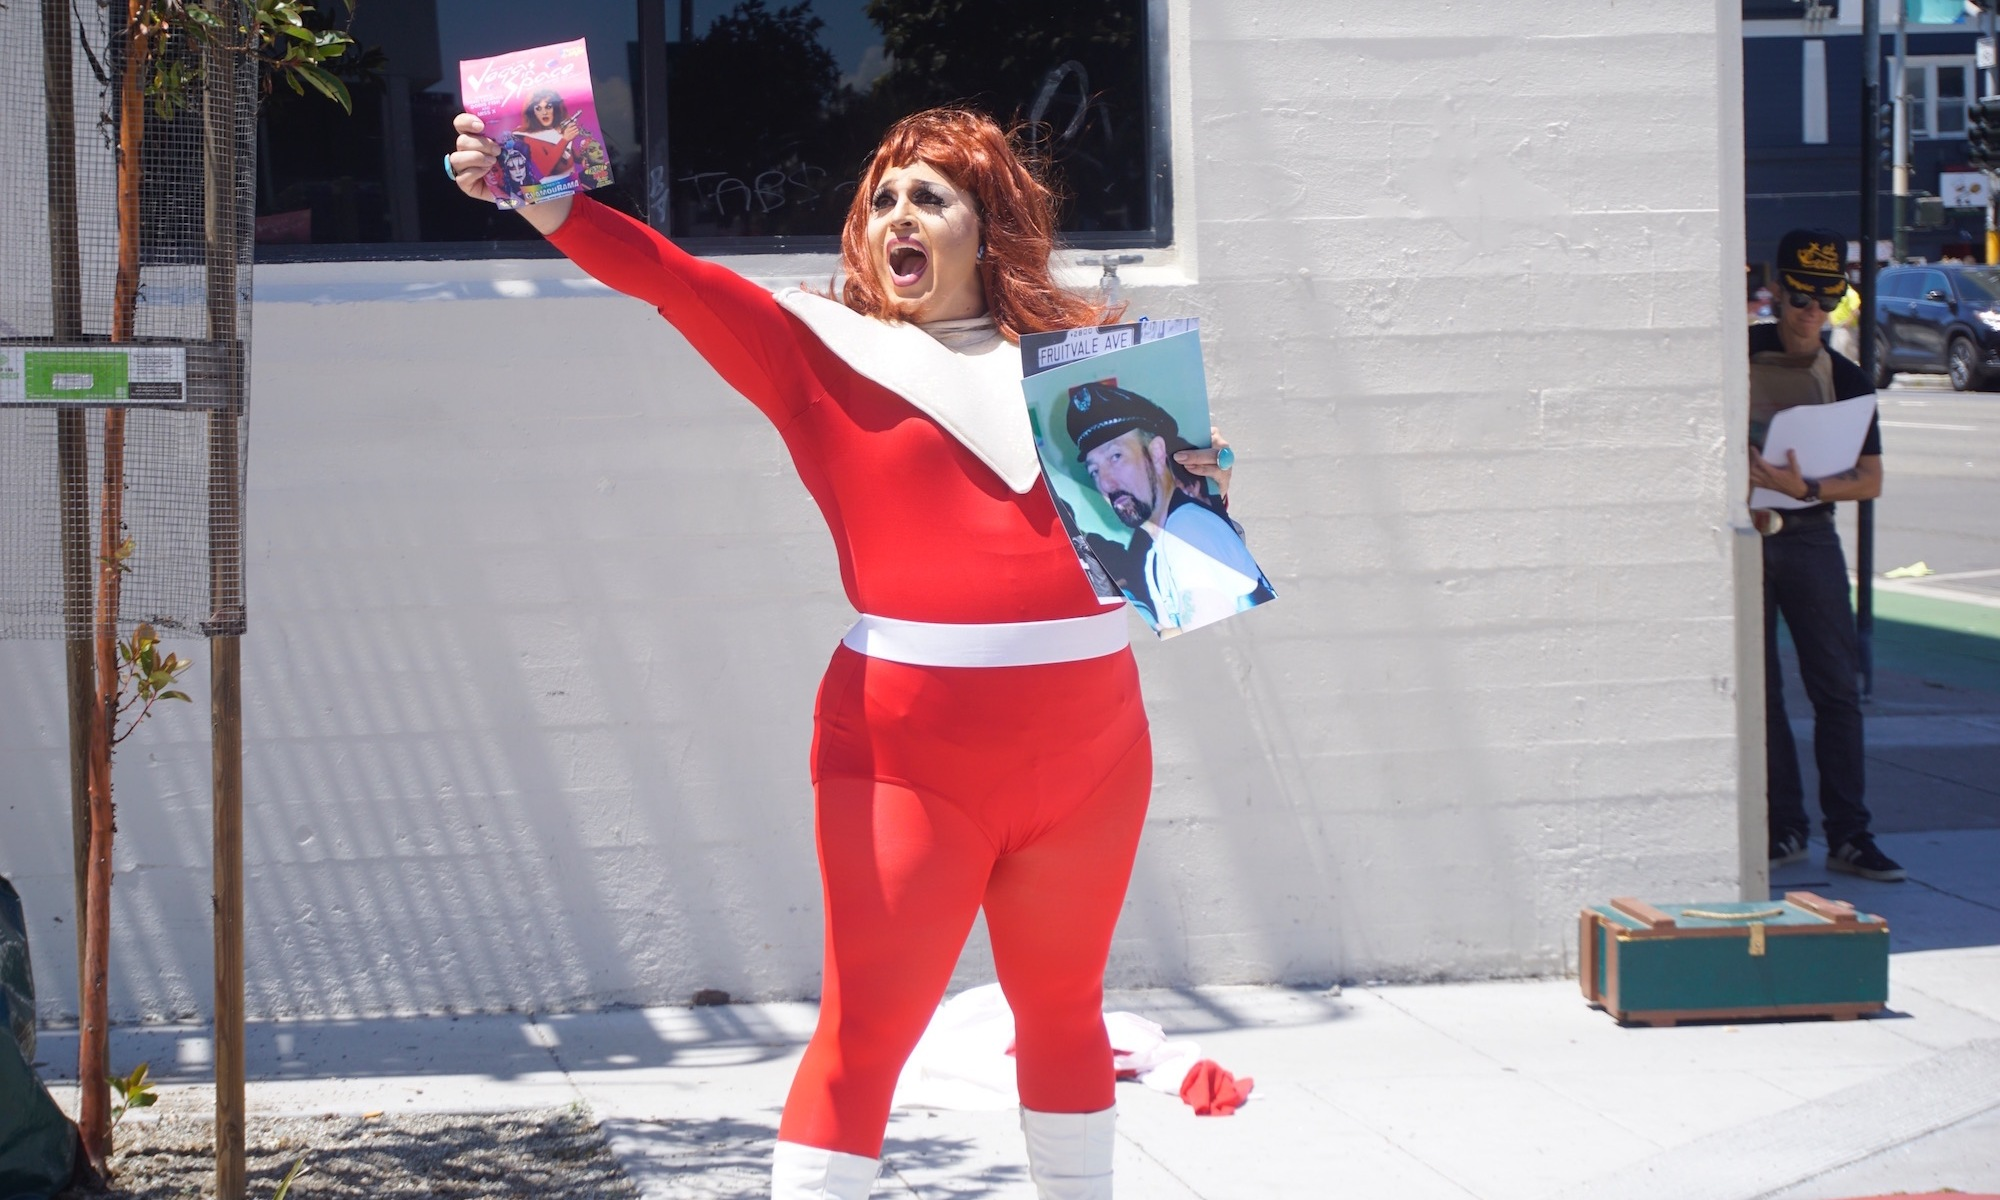 Performer Landa Lakes, a drag queen in a red and white spandex space suit, holds up flyers and photographs on a corner of Ringold Alley in San Francisco.